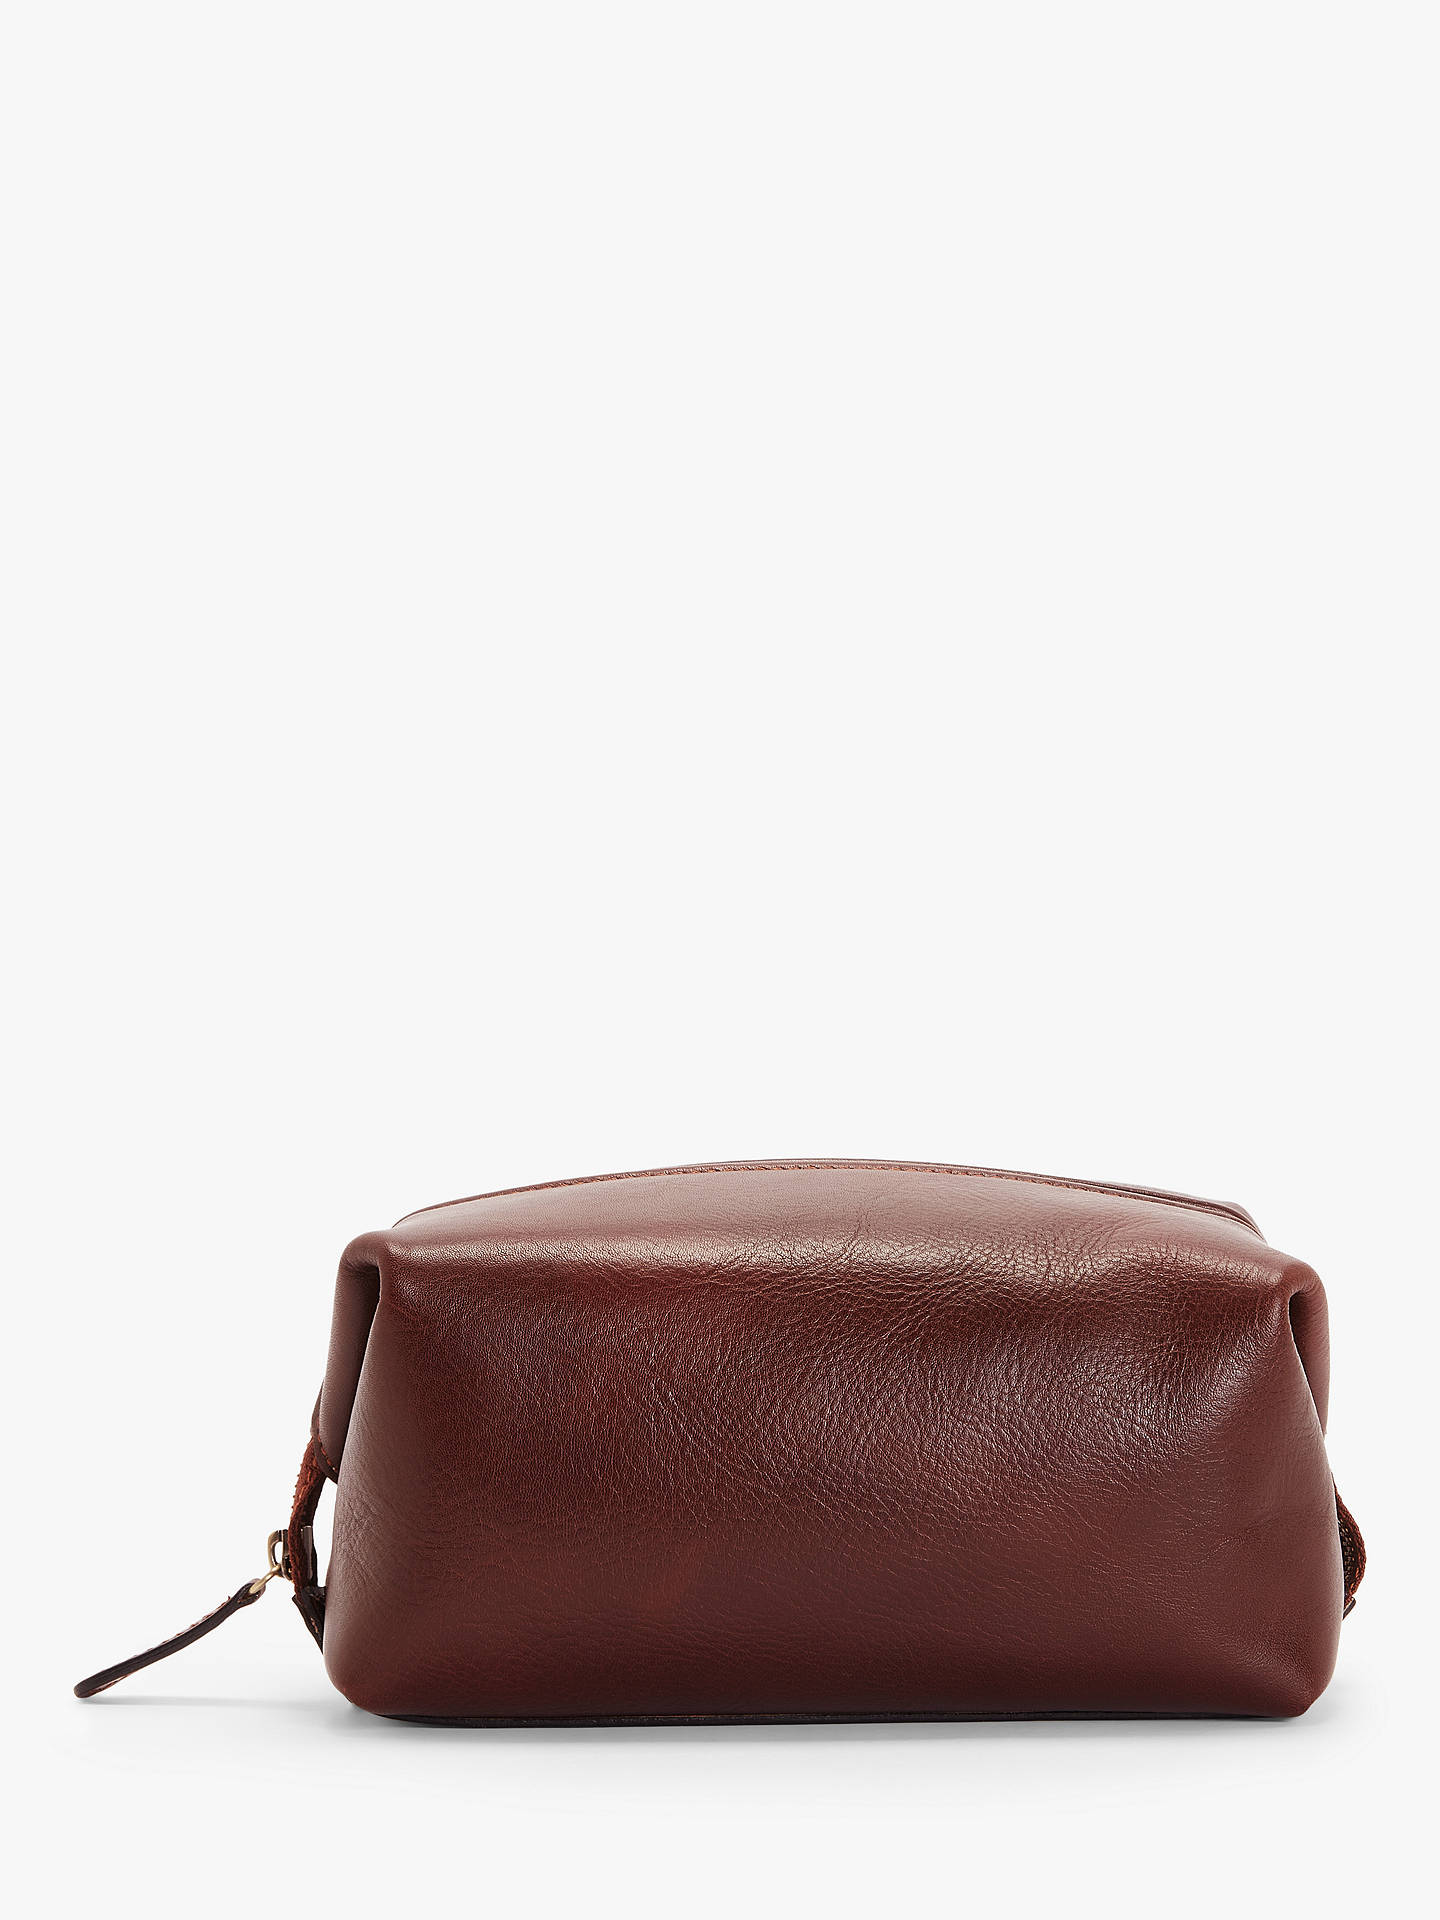 e1690026af91 Buy John Lewis   Partners Made in Italy Leather Wash Bag